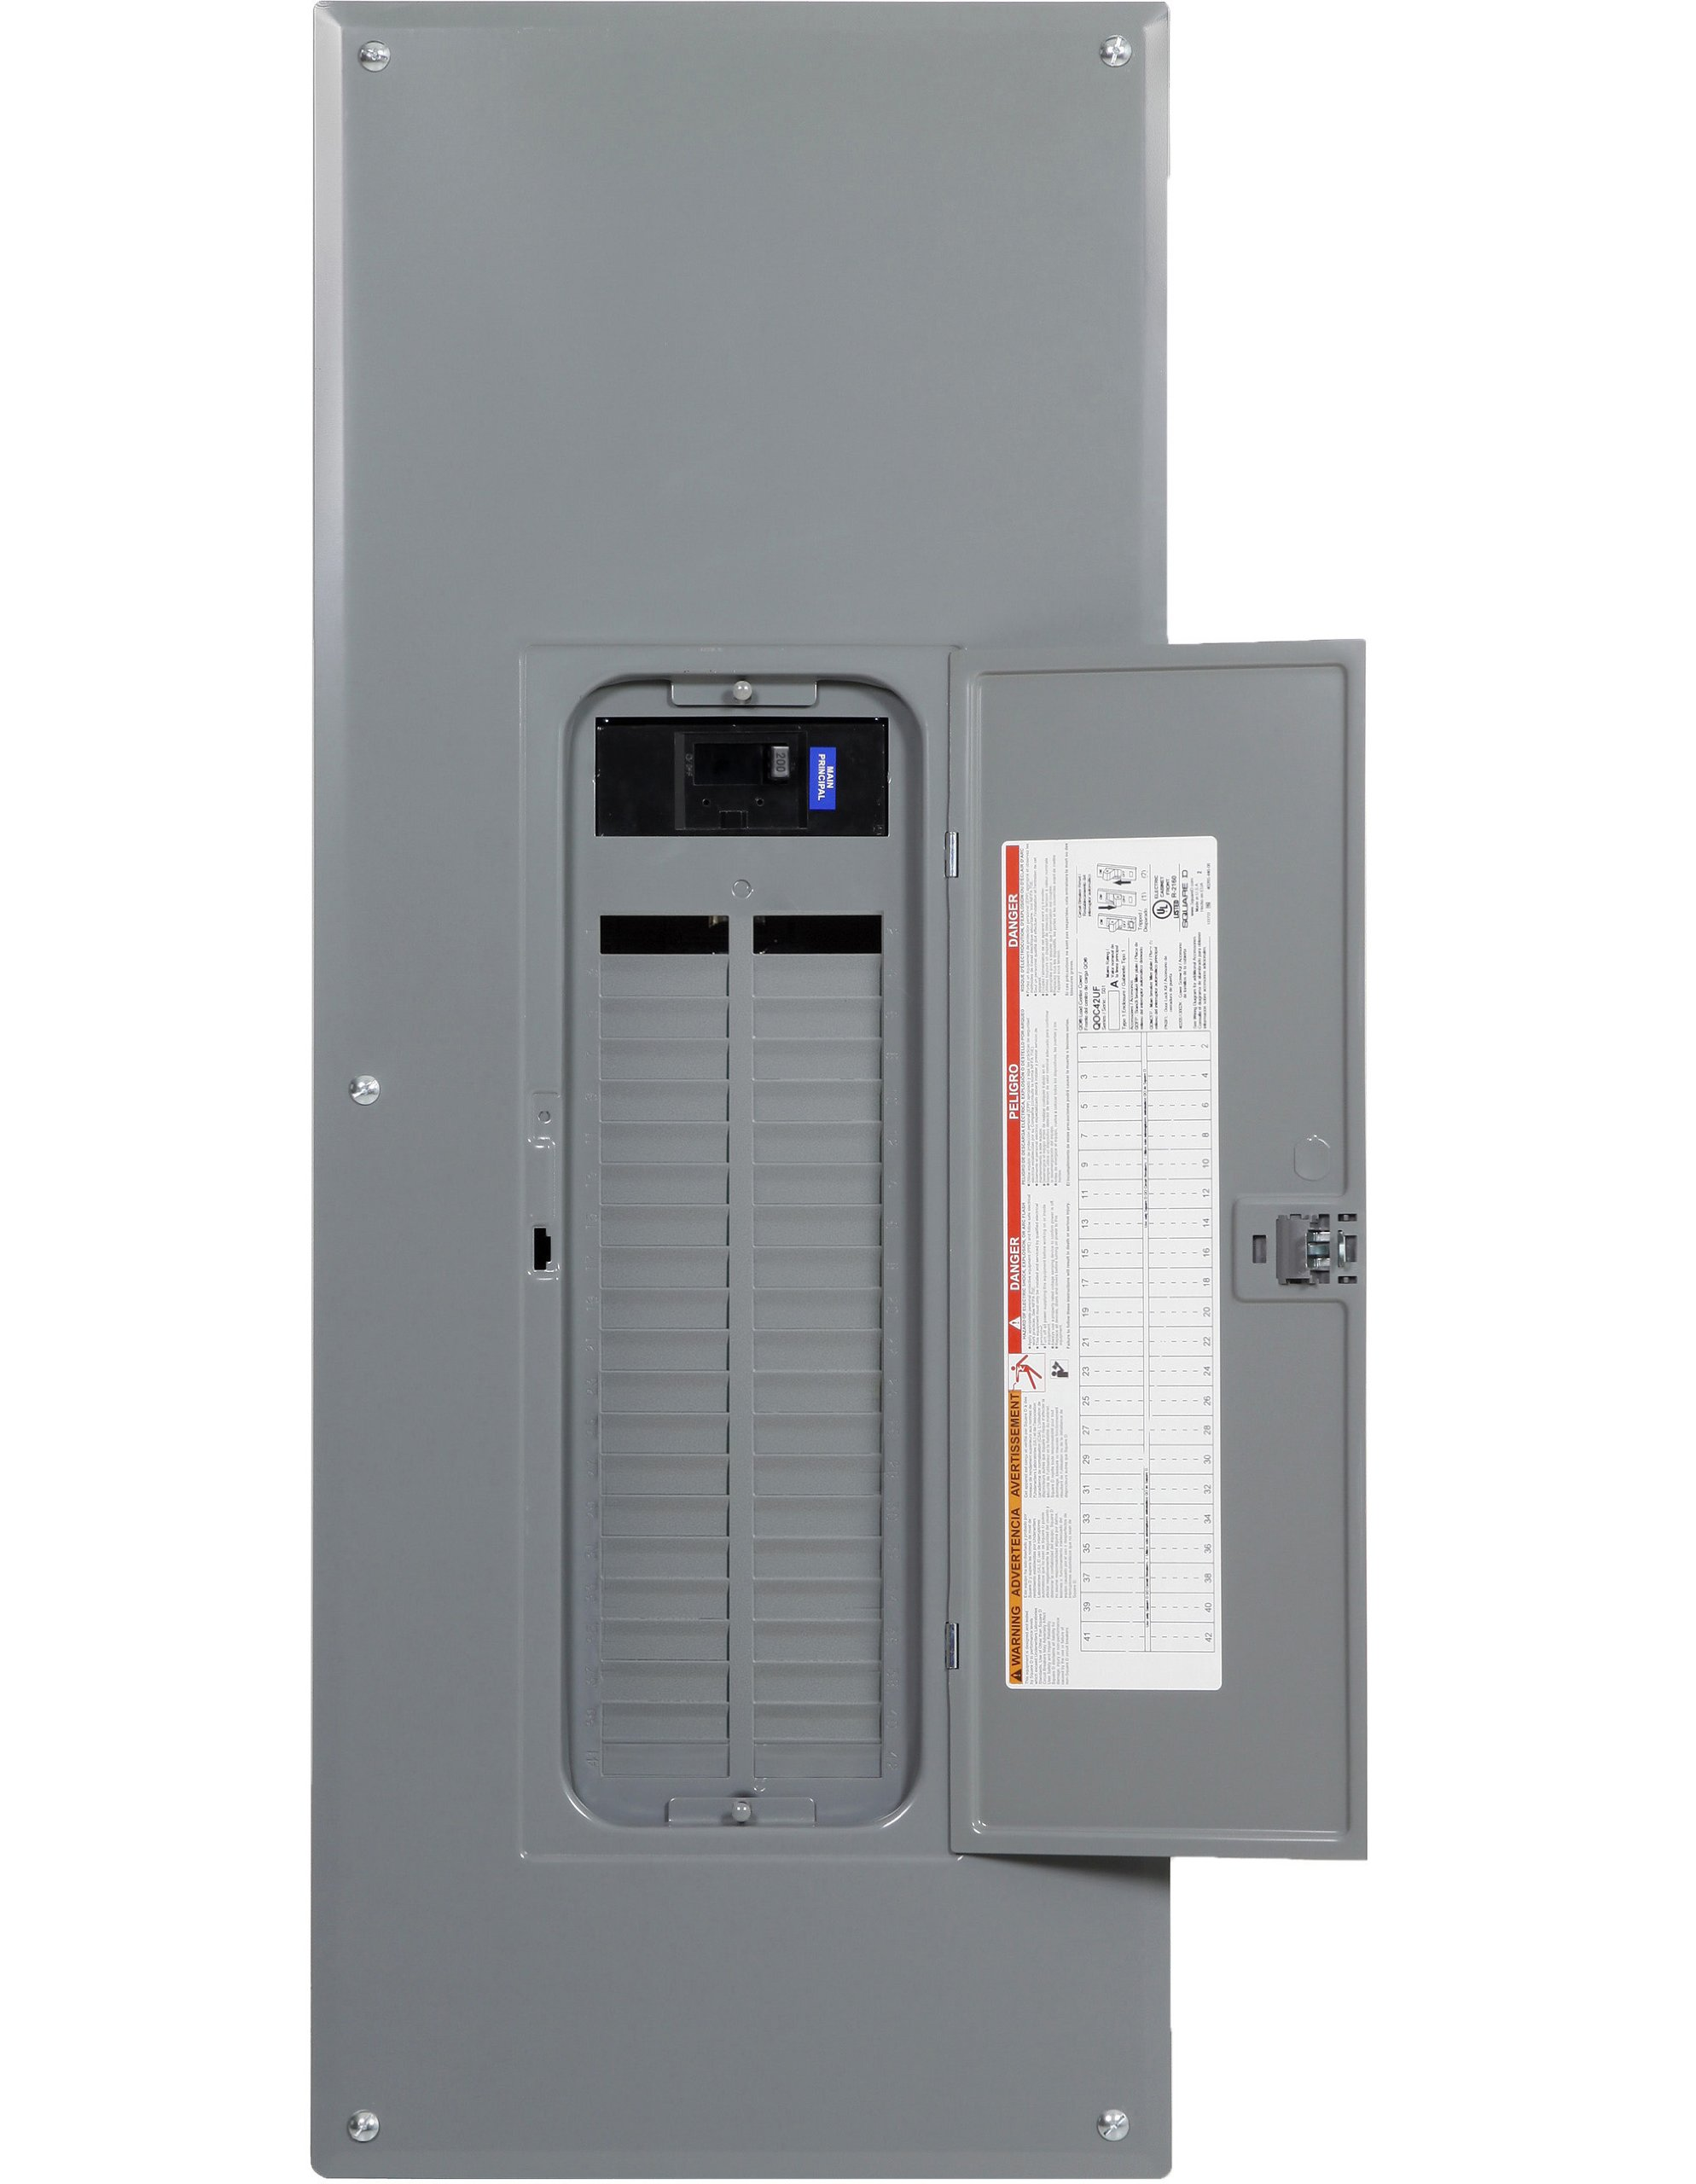 Square D by Schneider Electric QO Plug-On Neutral 200 Amp Main Breaker 42-Space 42-Circuit Indoor Load Center with Cover by Square D by Schneider Electric